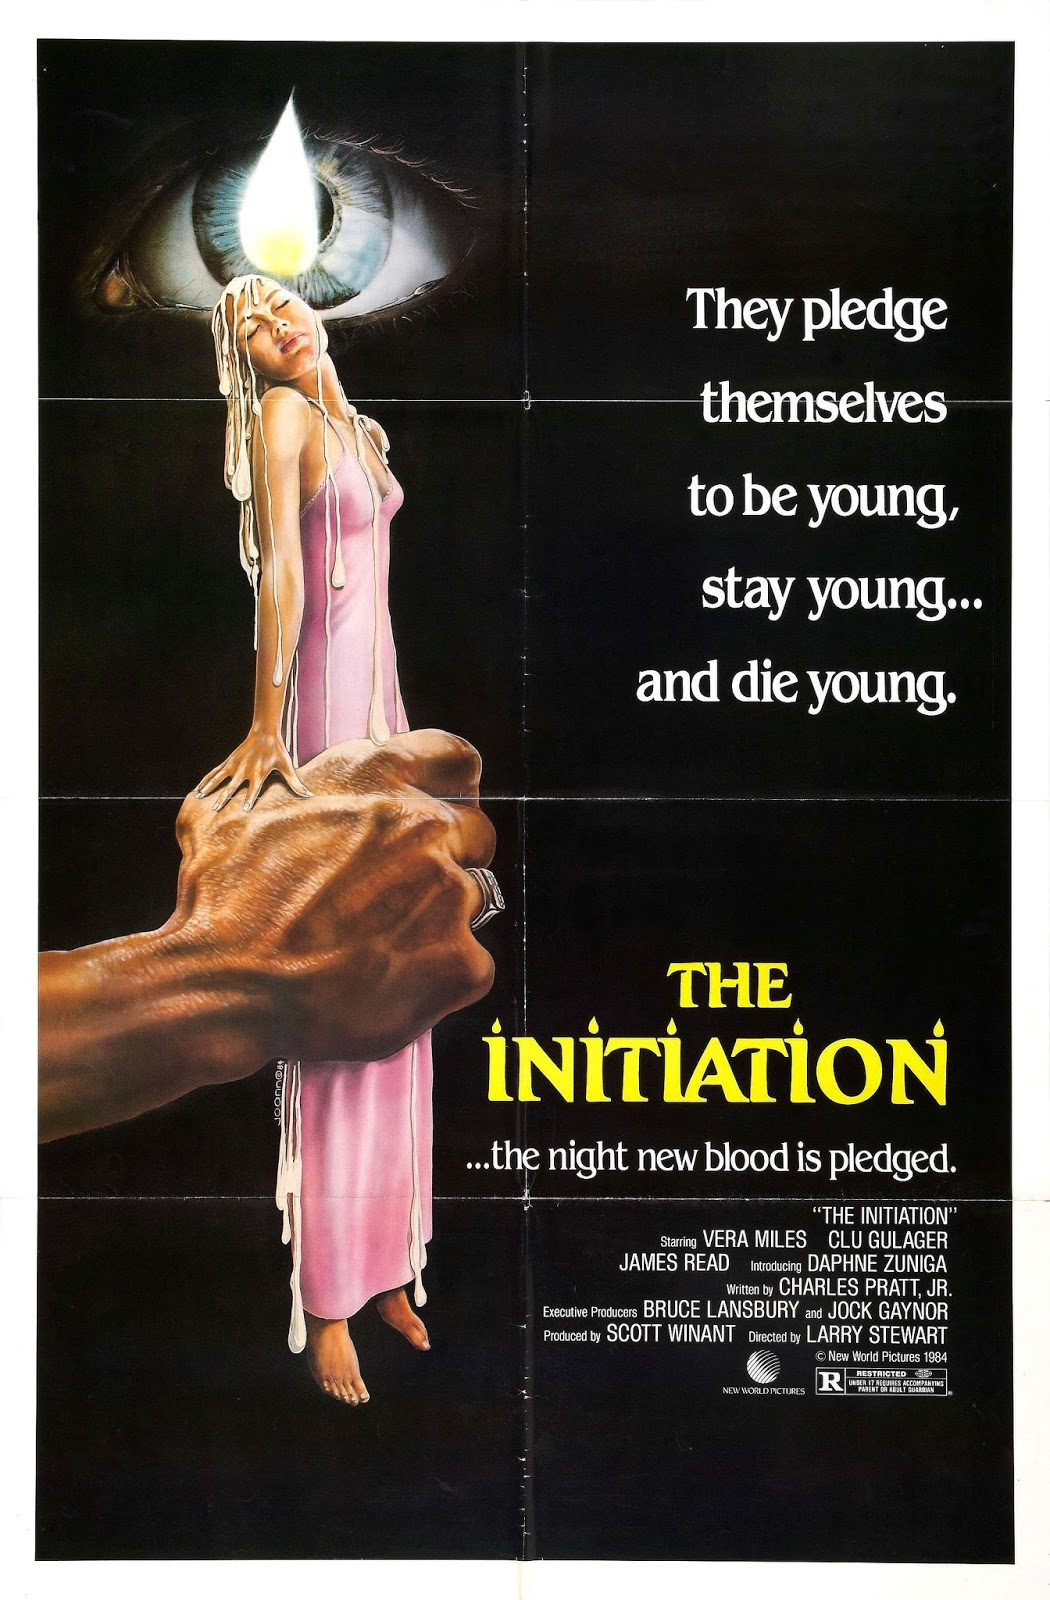 La iniciación  (The Initiation)